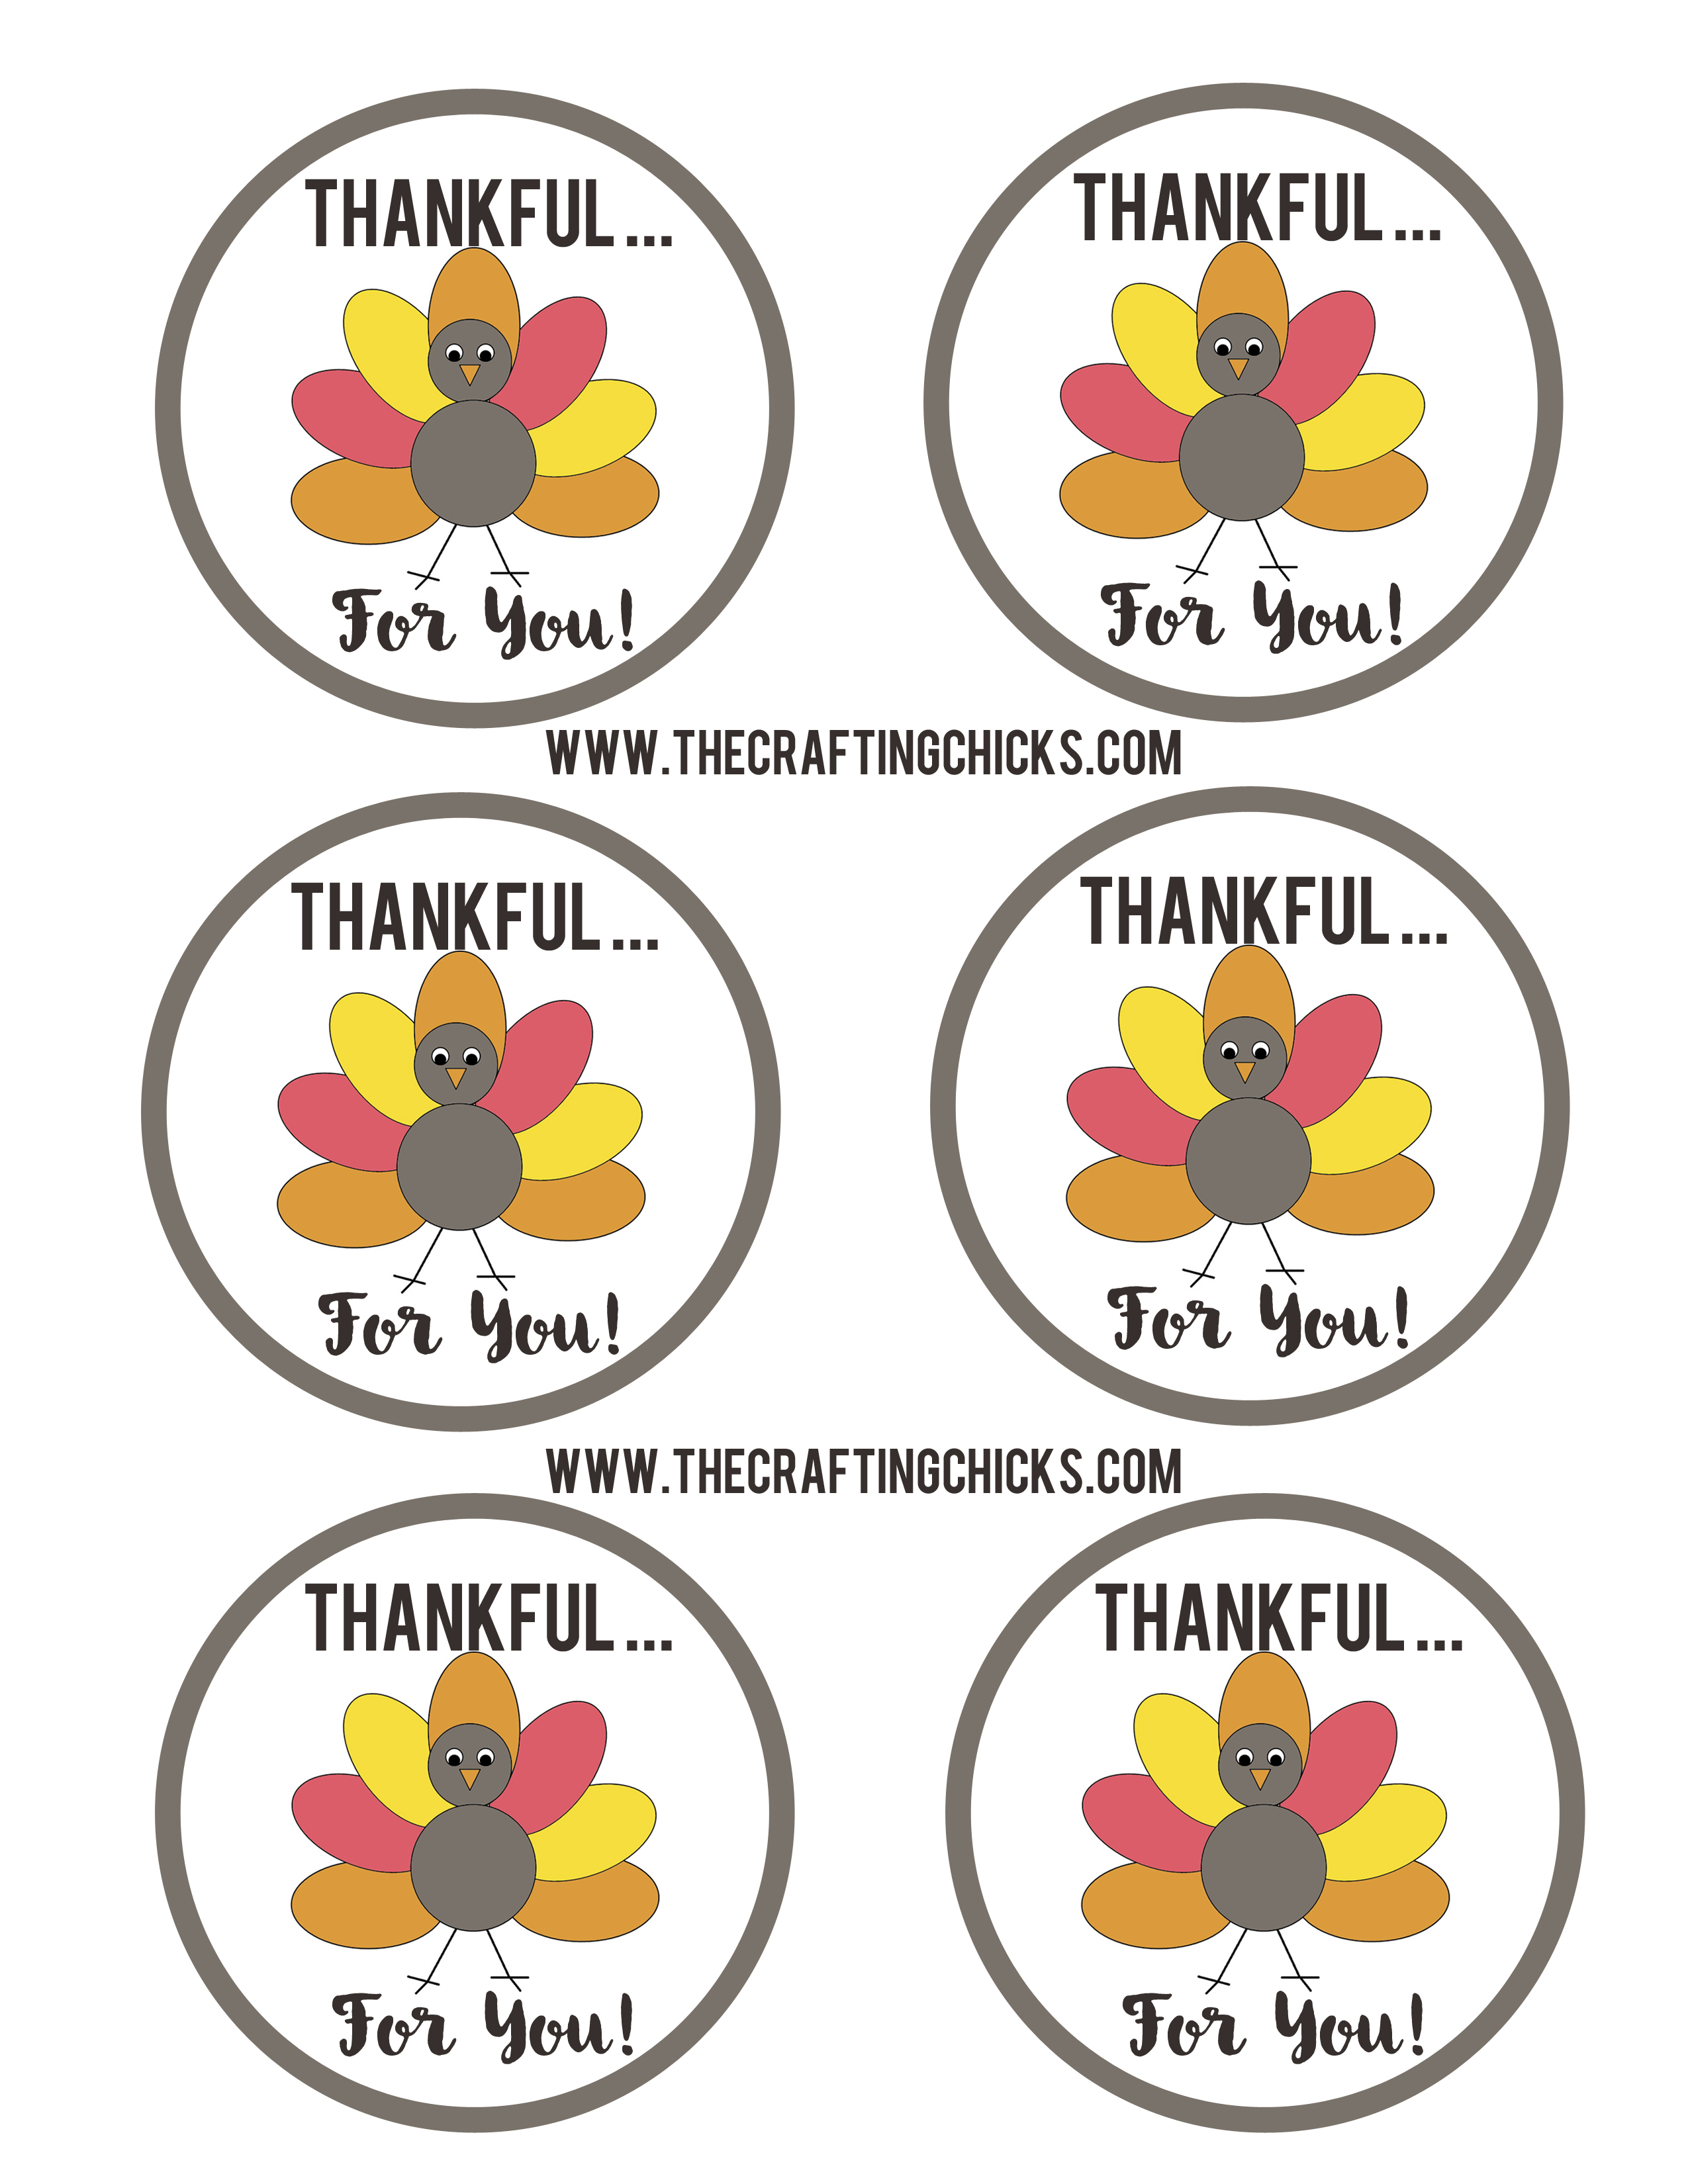 picture about Free Printable Thanksgiving Tags named No cost Printable Grateful Tags